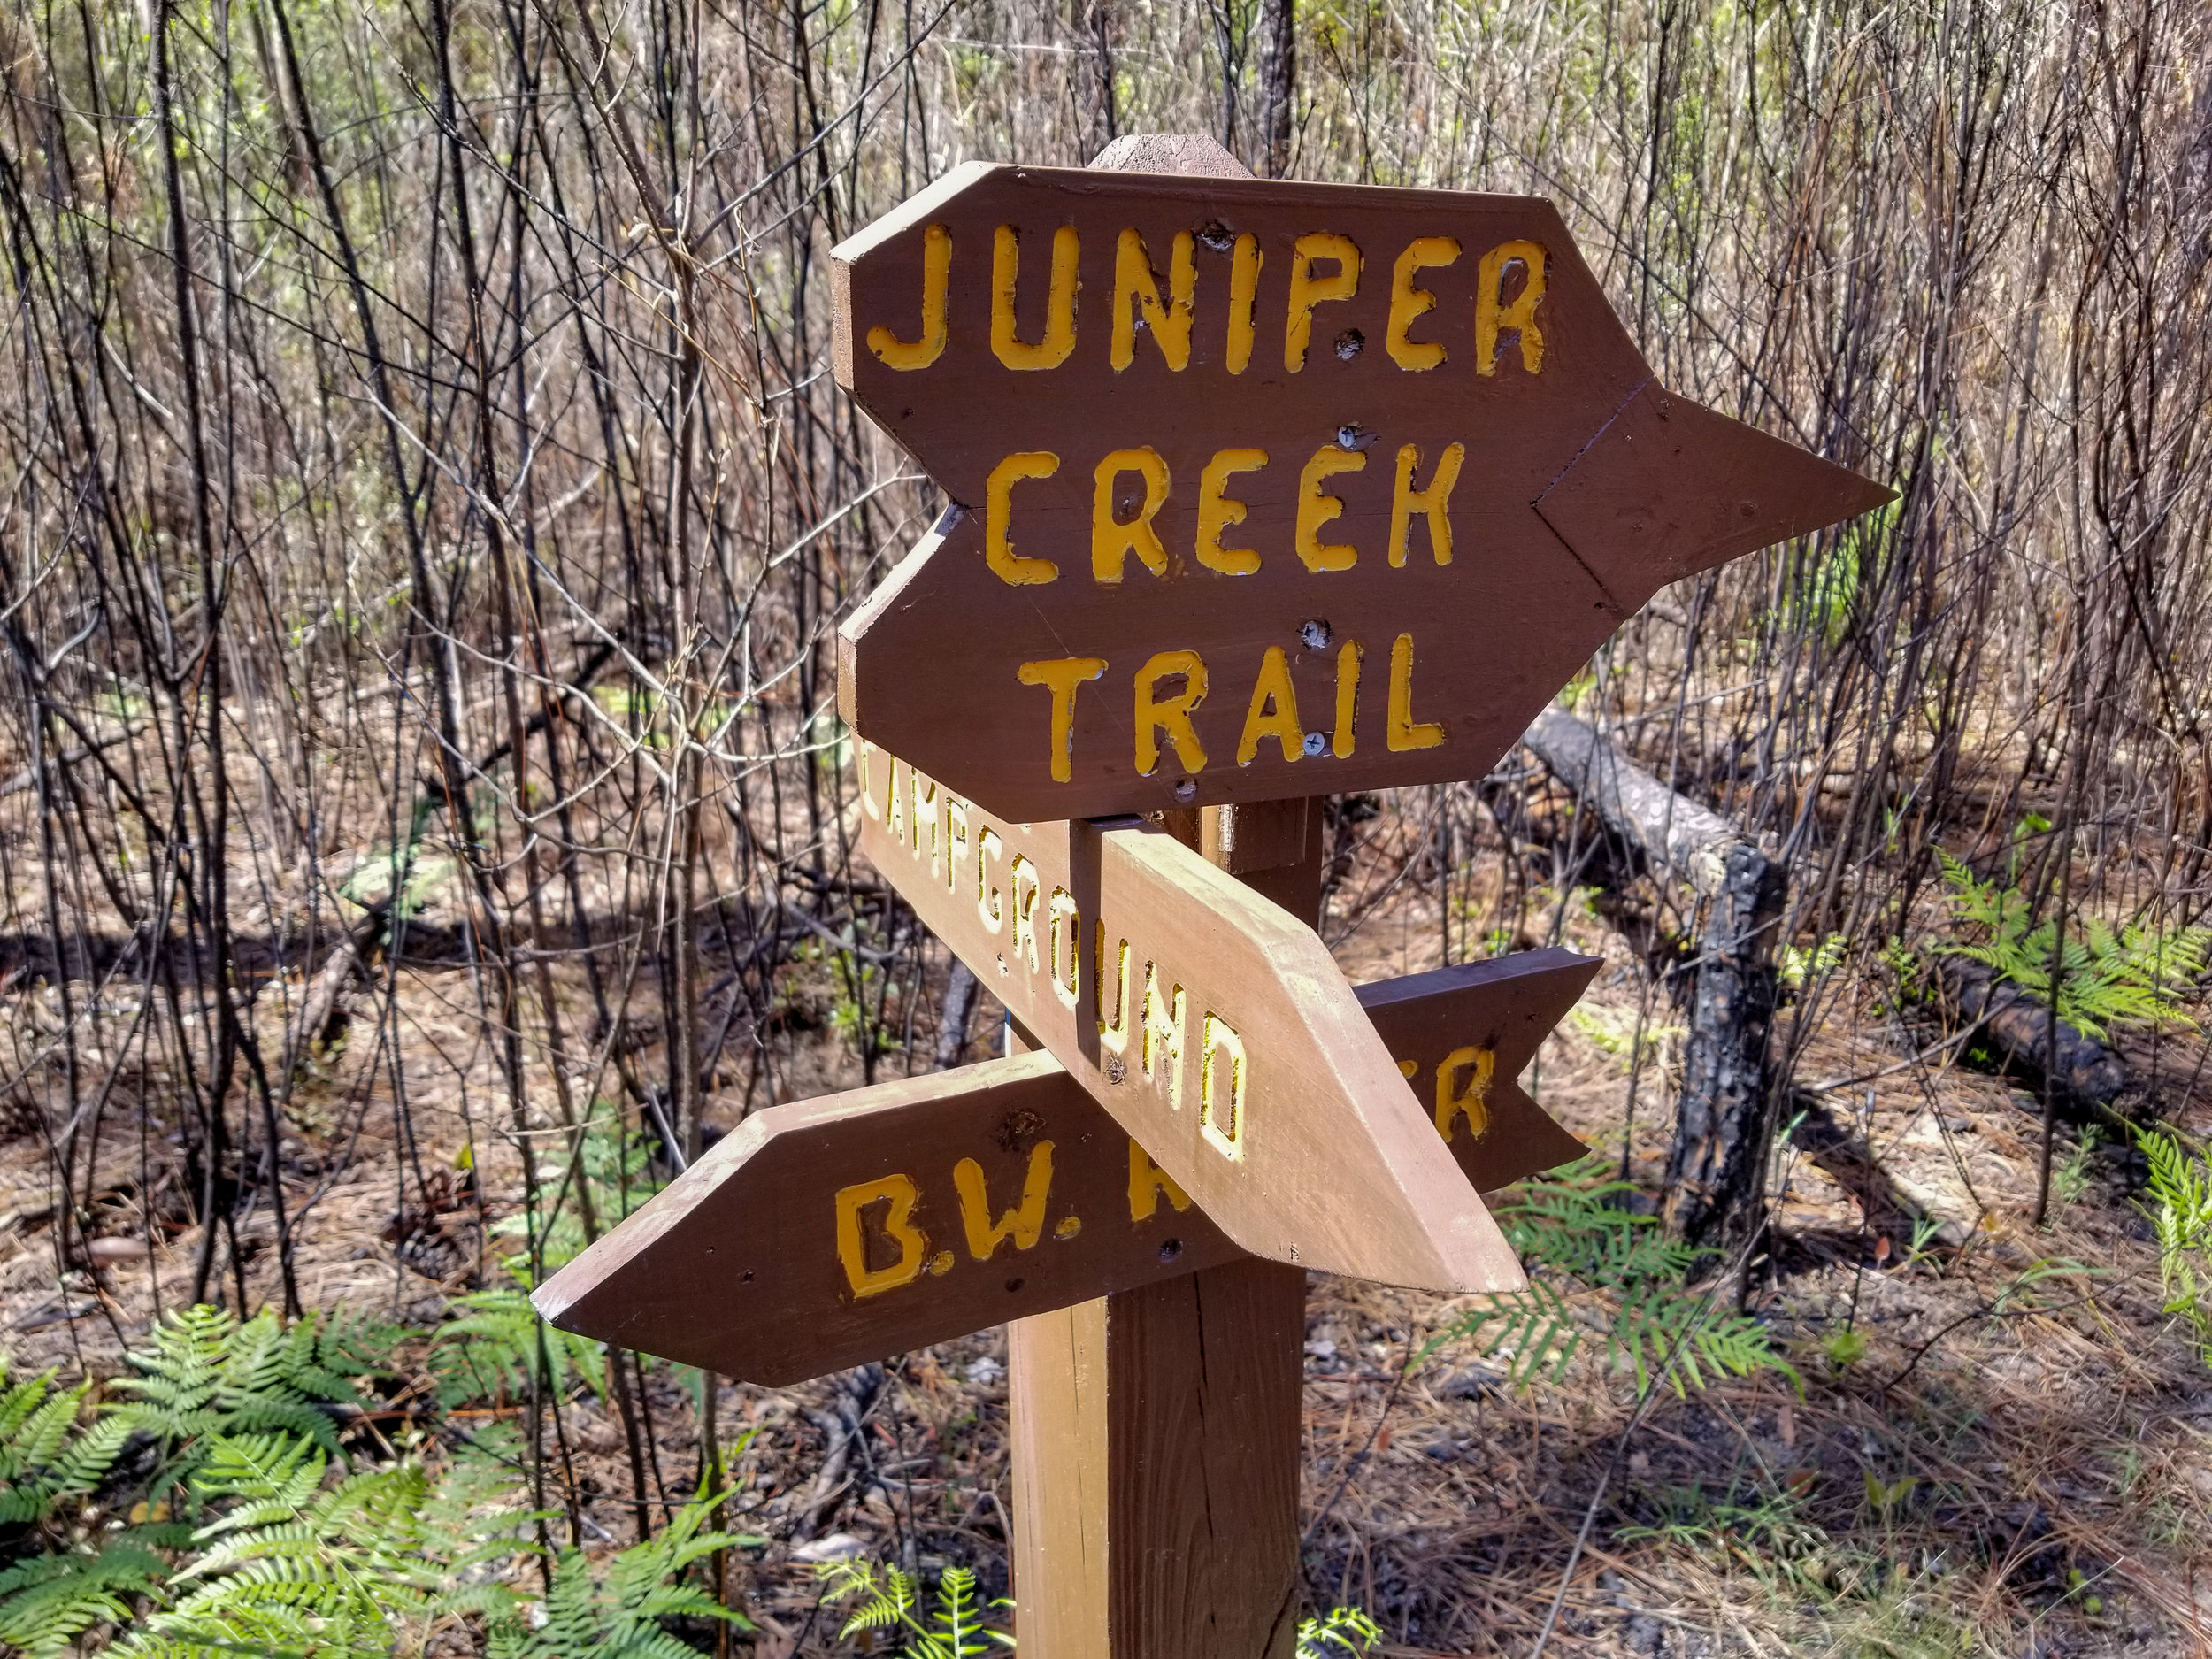 Trail Marker in the Blackwater River State Park